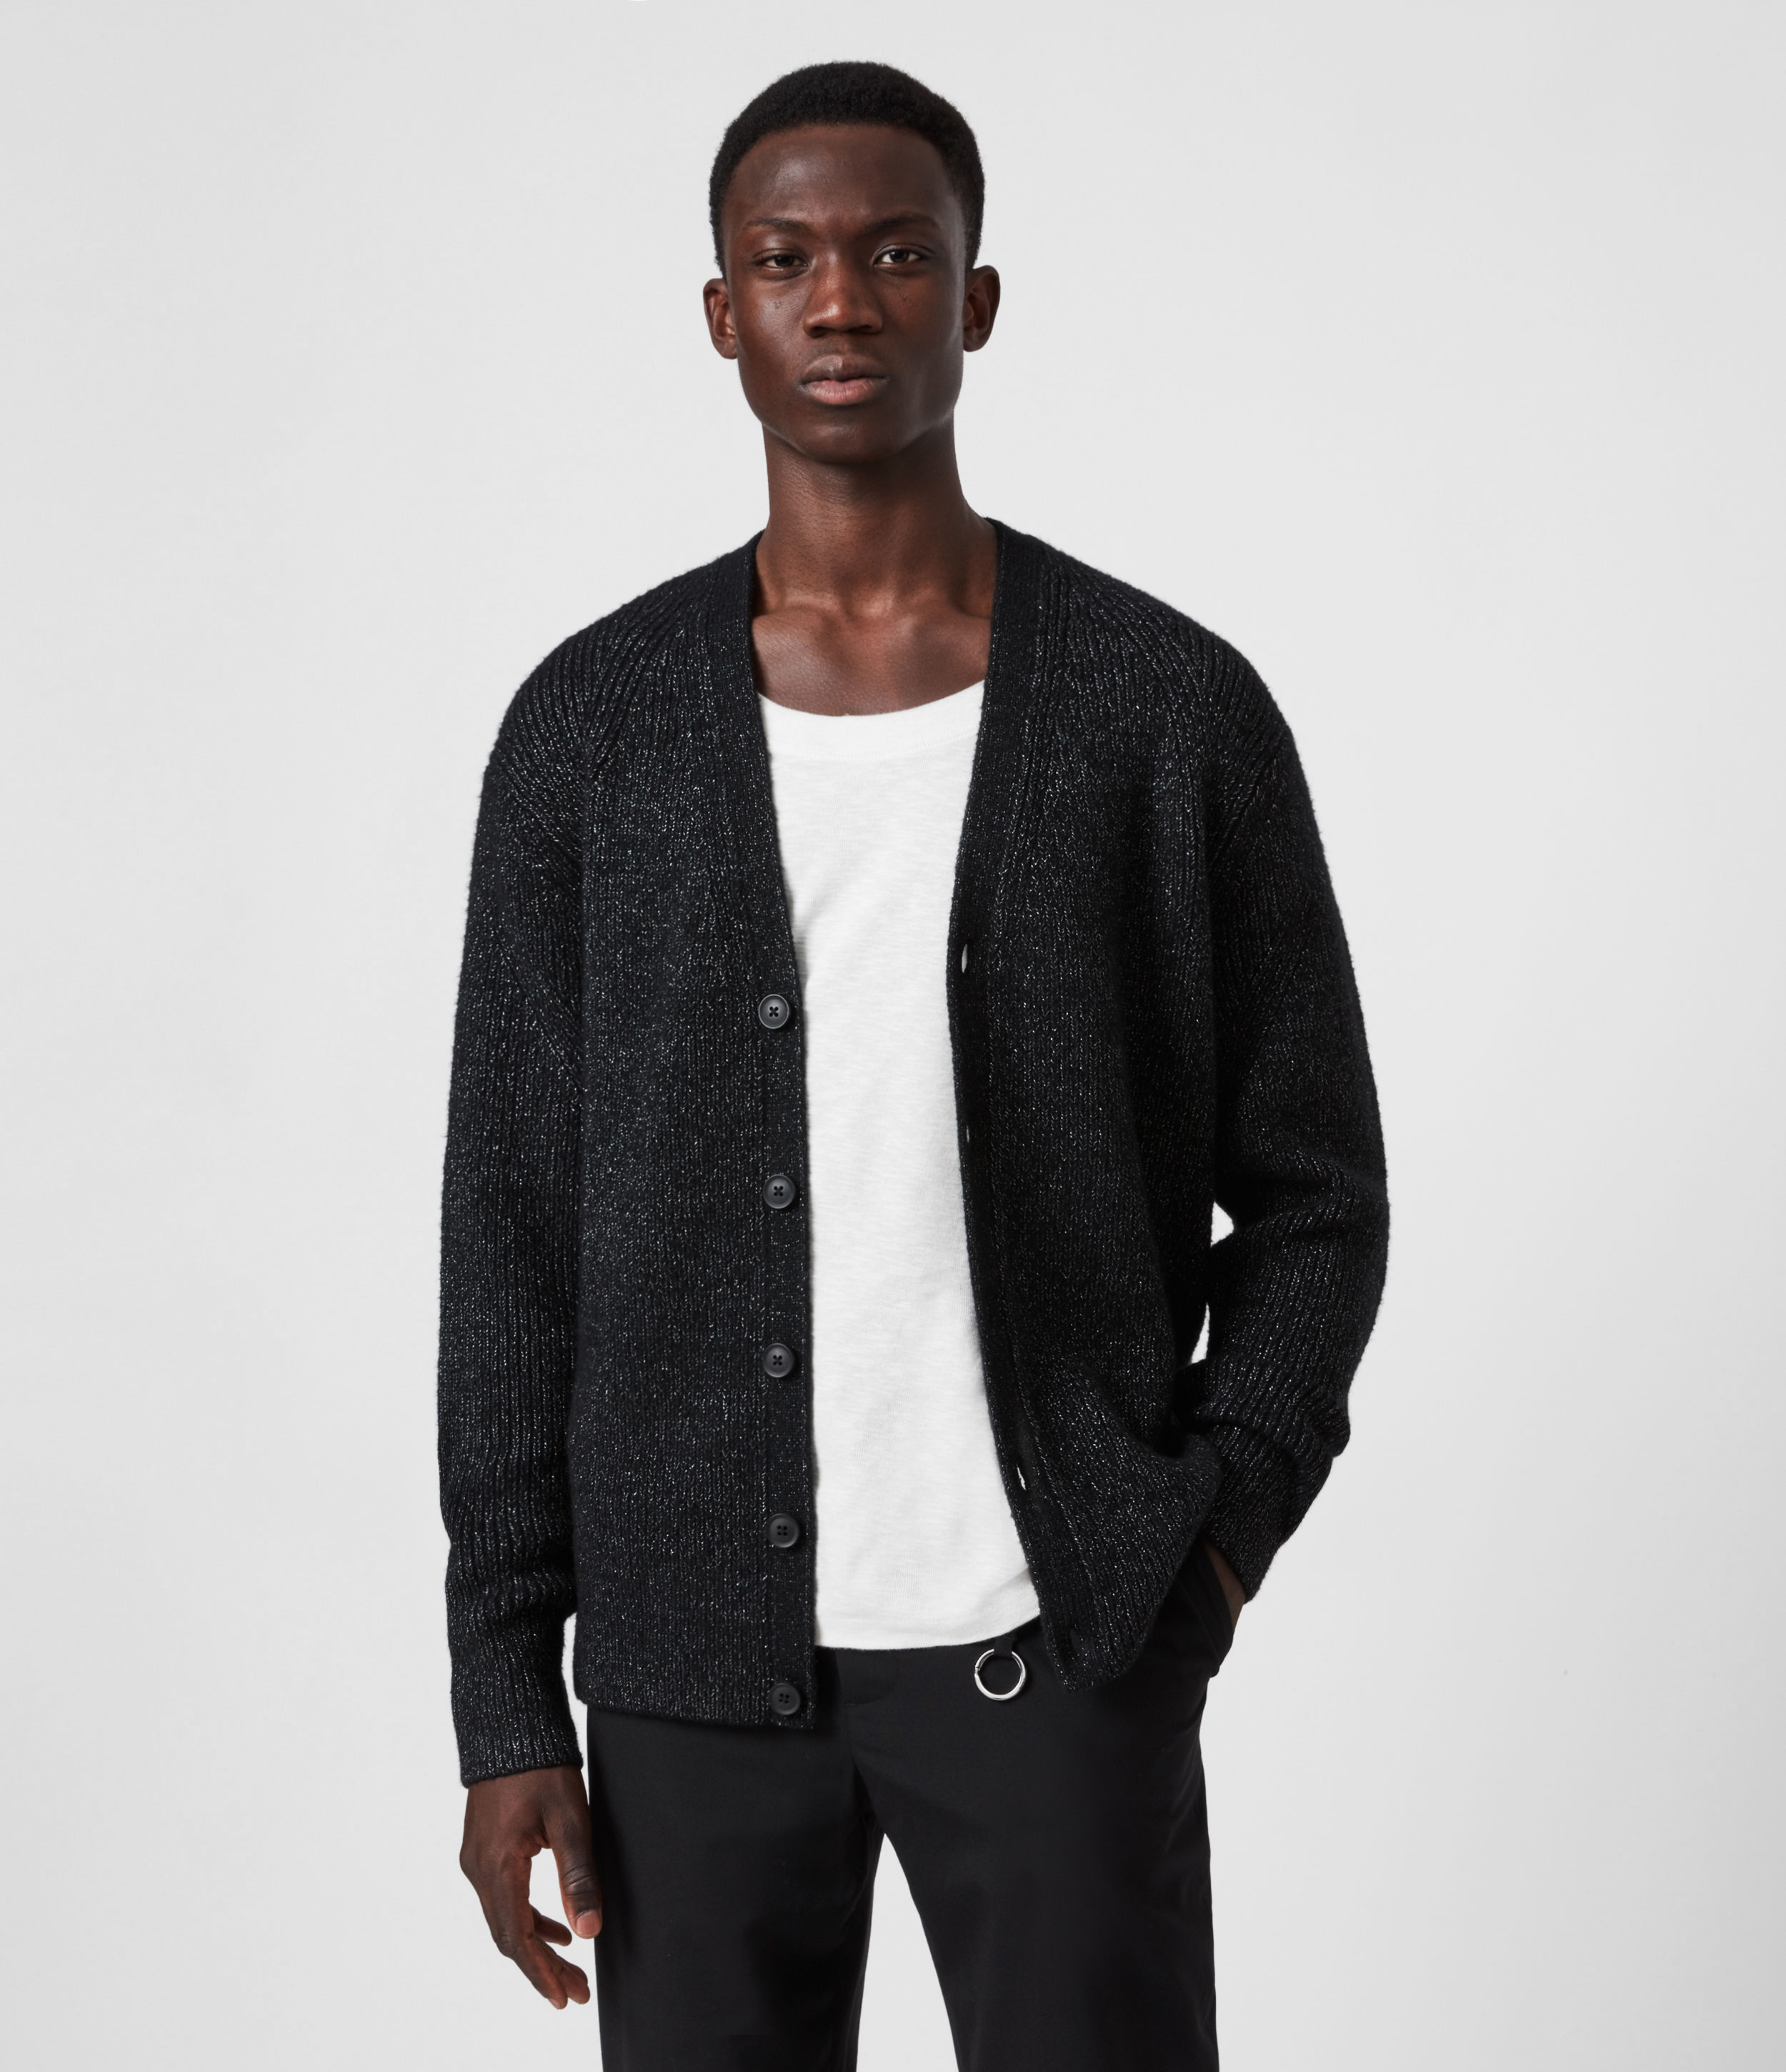 AllSaints Men's Wool Texture Relaxed Fit Cosmic Cardigan, Black, Size: XS